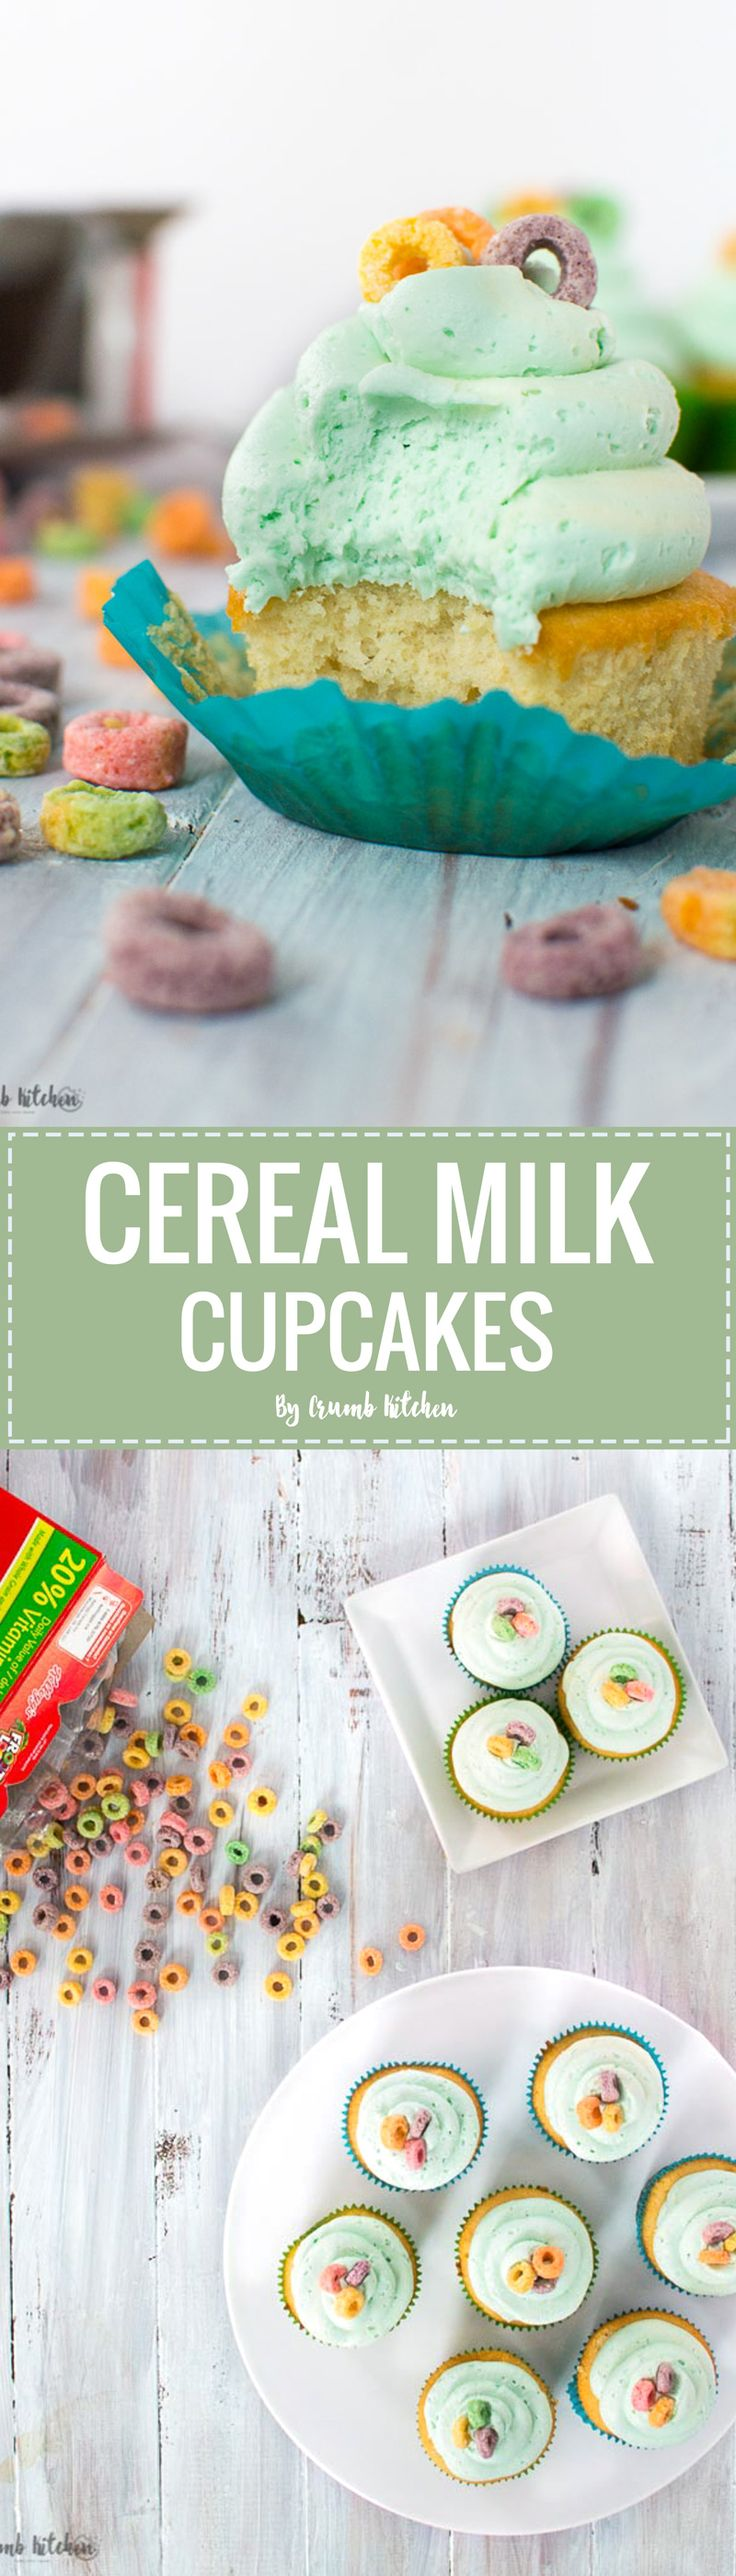 These Cereal Milk Cupcakes combine the sweet and salty taste of cereal milk with fluffy vanilla cake and the perfect buttercream frosting. | Crumb Kitchen